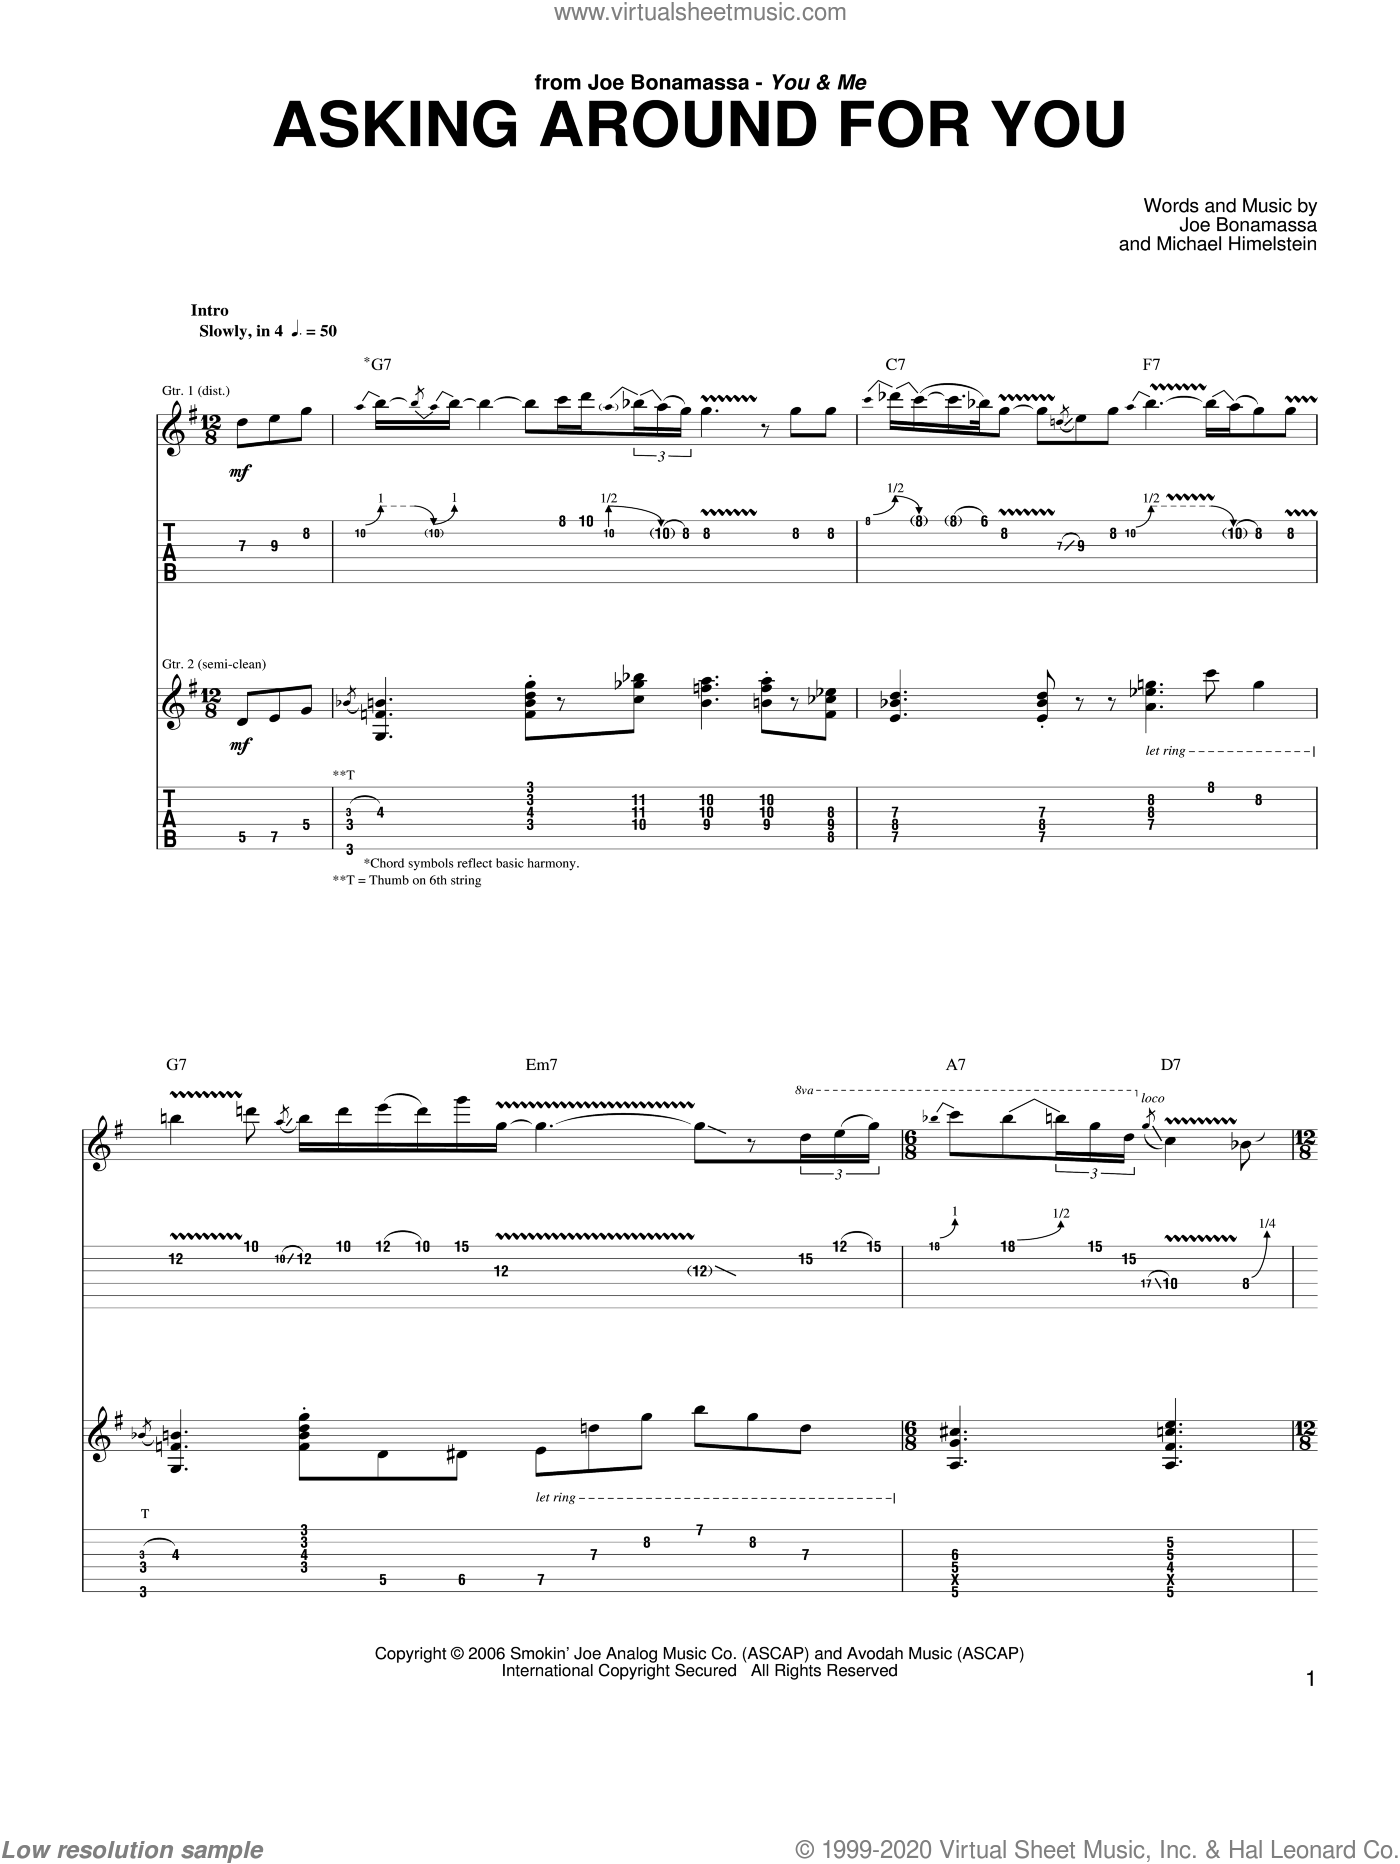 Asking Around For You sheet music for guitar (tablature) by Michael Himelstein and Joe Bonamassa. Score Image Preview.